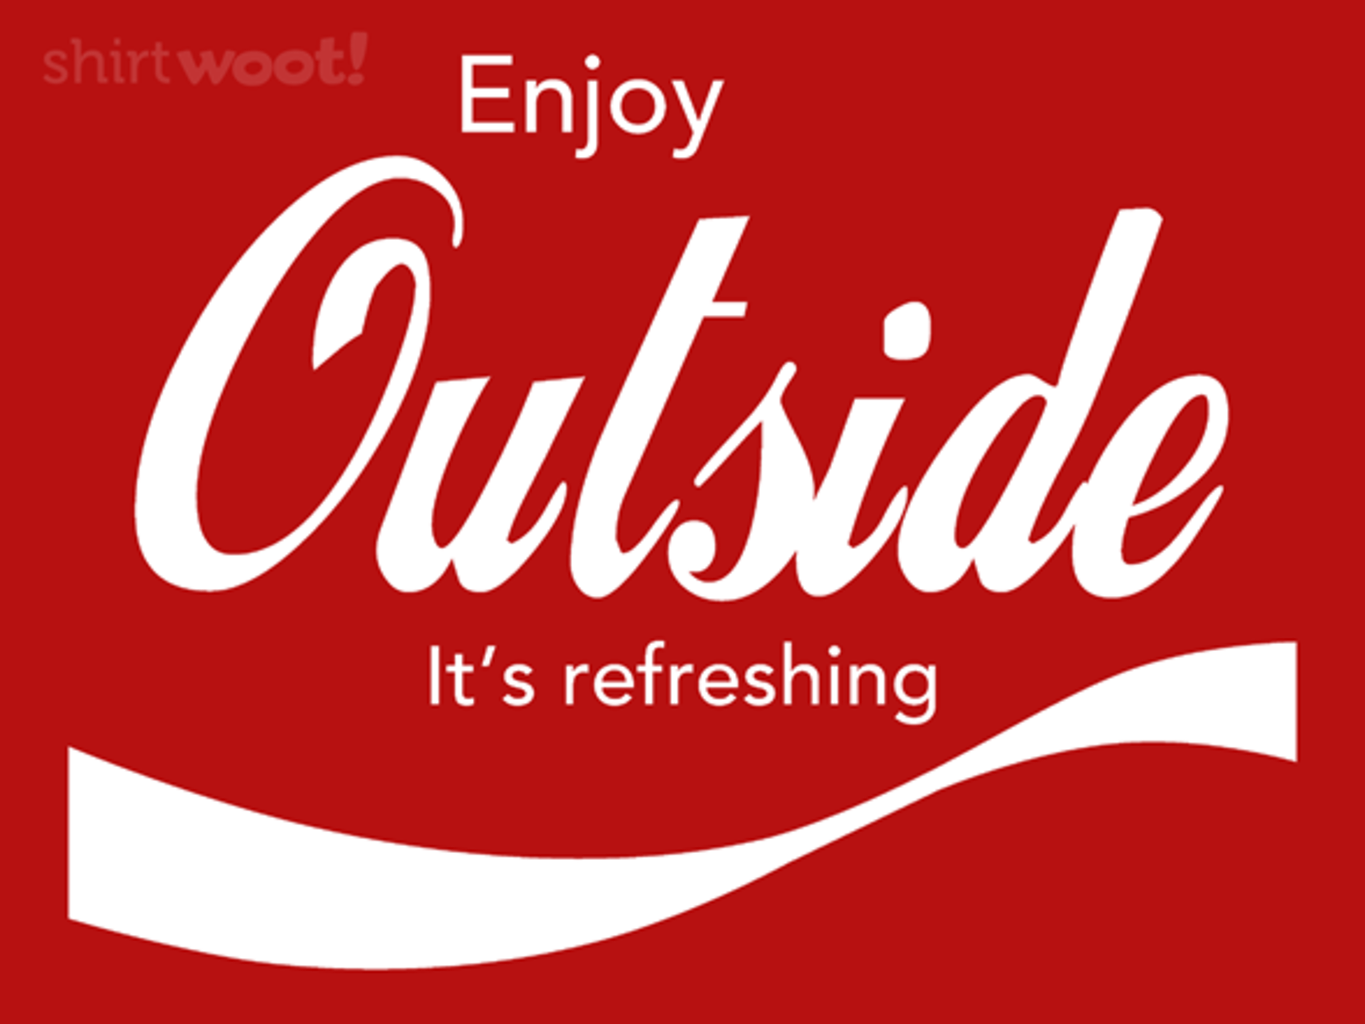 Woot!: Outside is Refreshing